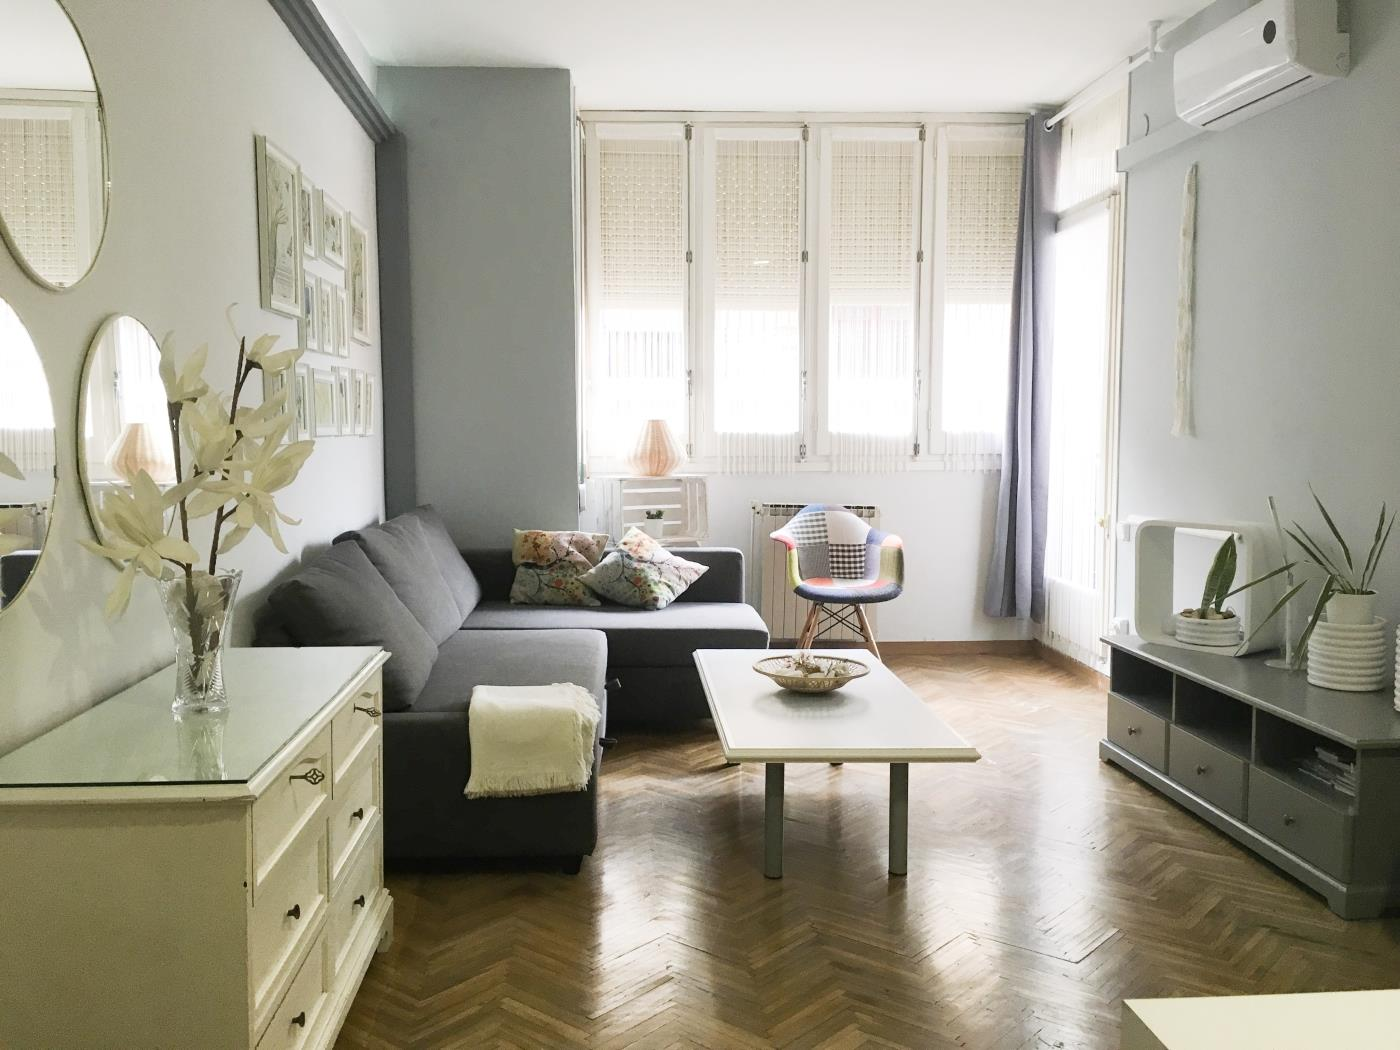 Beautiful and central apartment ideal for groups in Gracia for 9 - My Space Barcelona Appartamenti